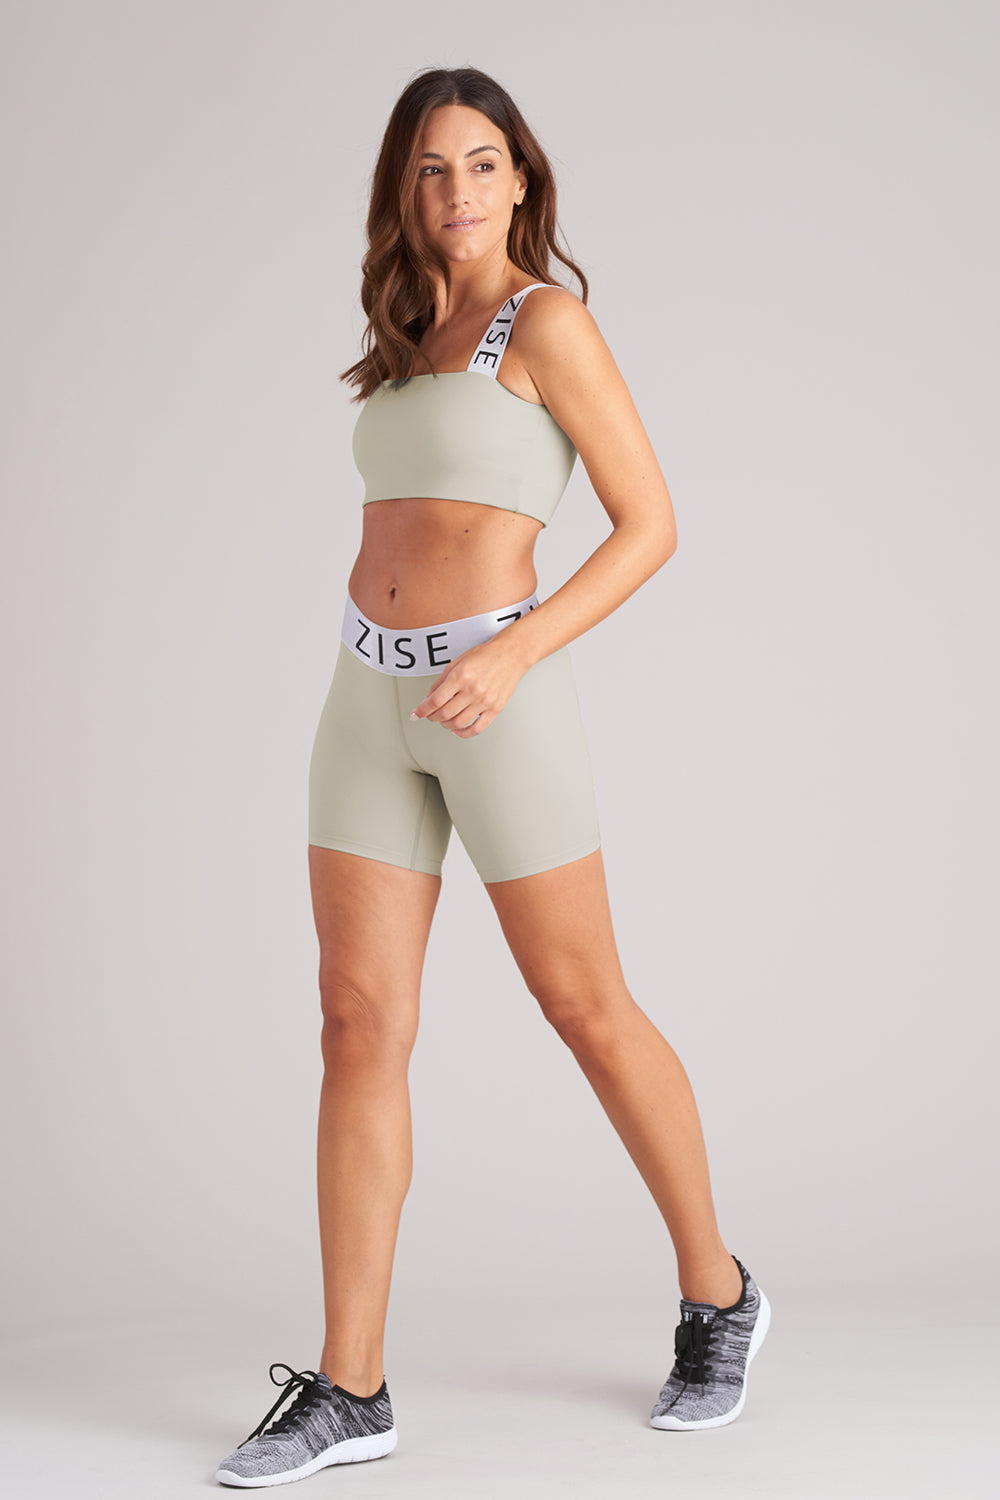 Zise Gigi Cycling Shorts